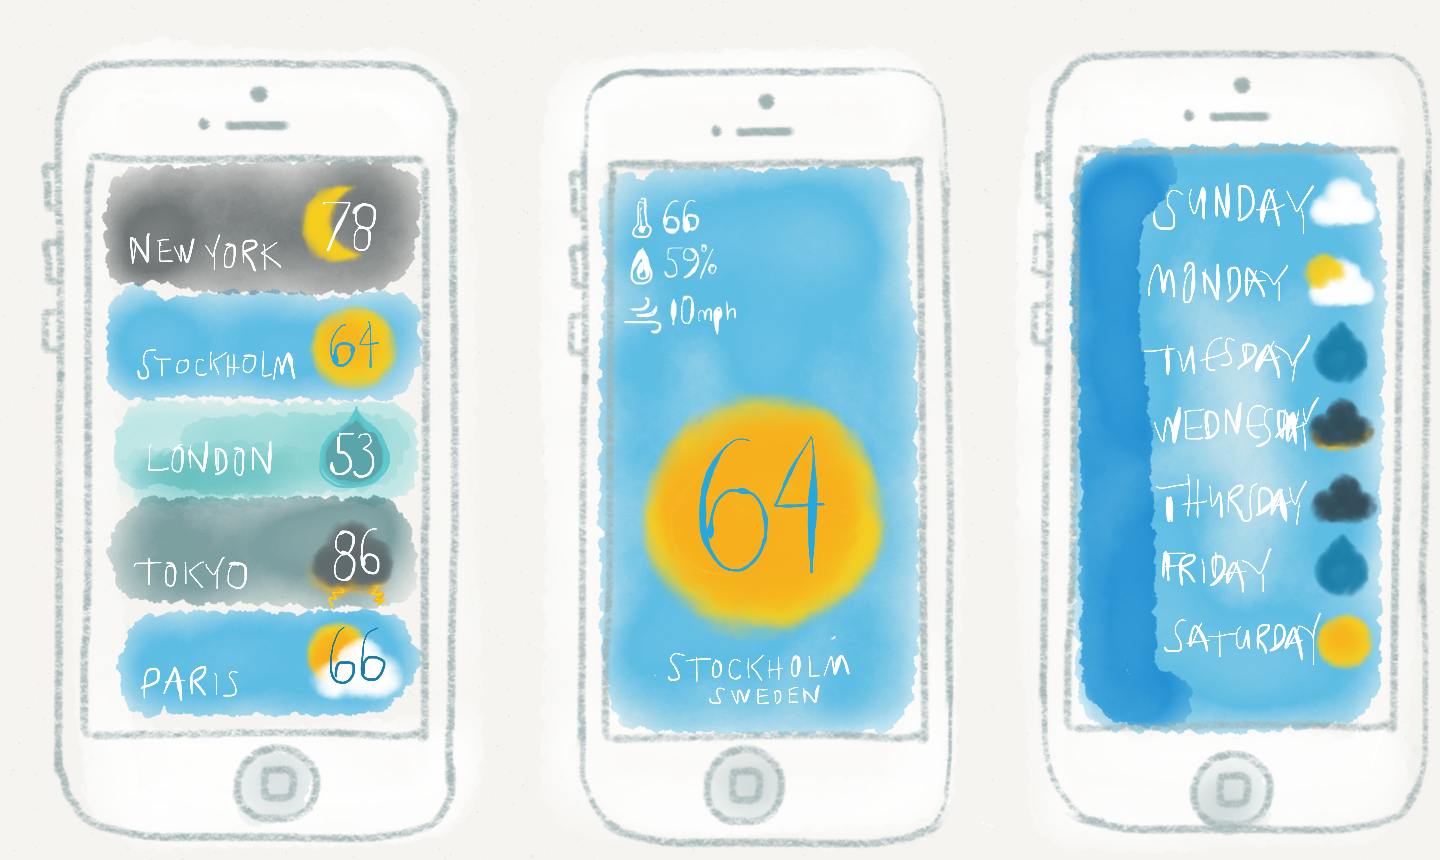 Weather app for iOS 7. UI